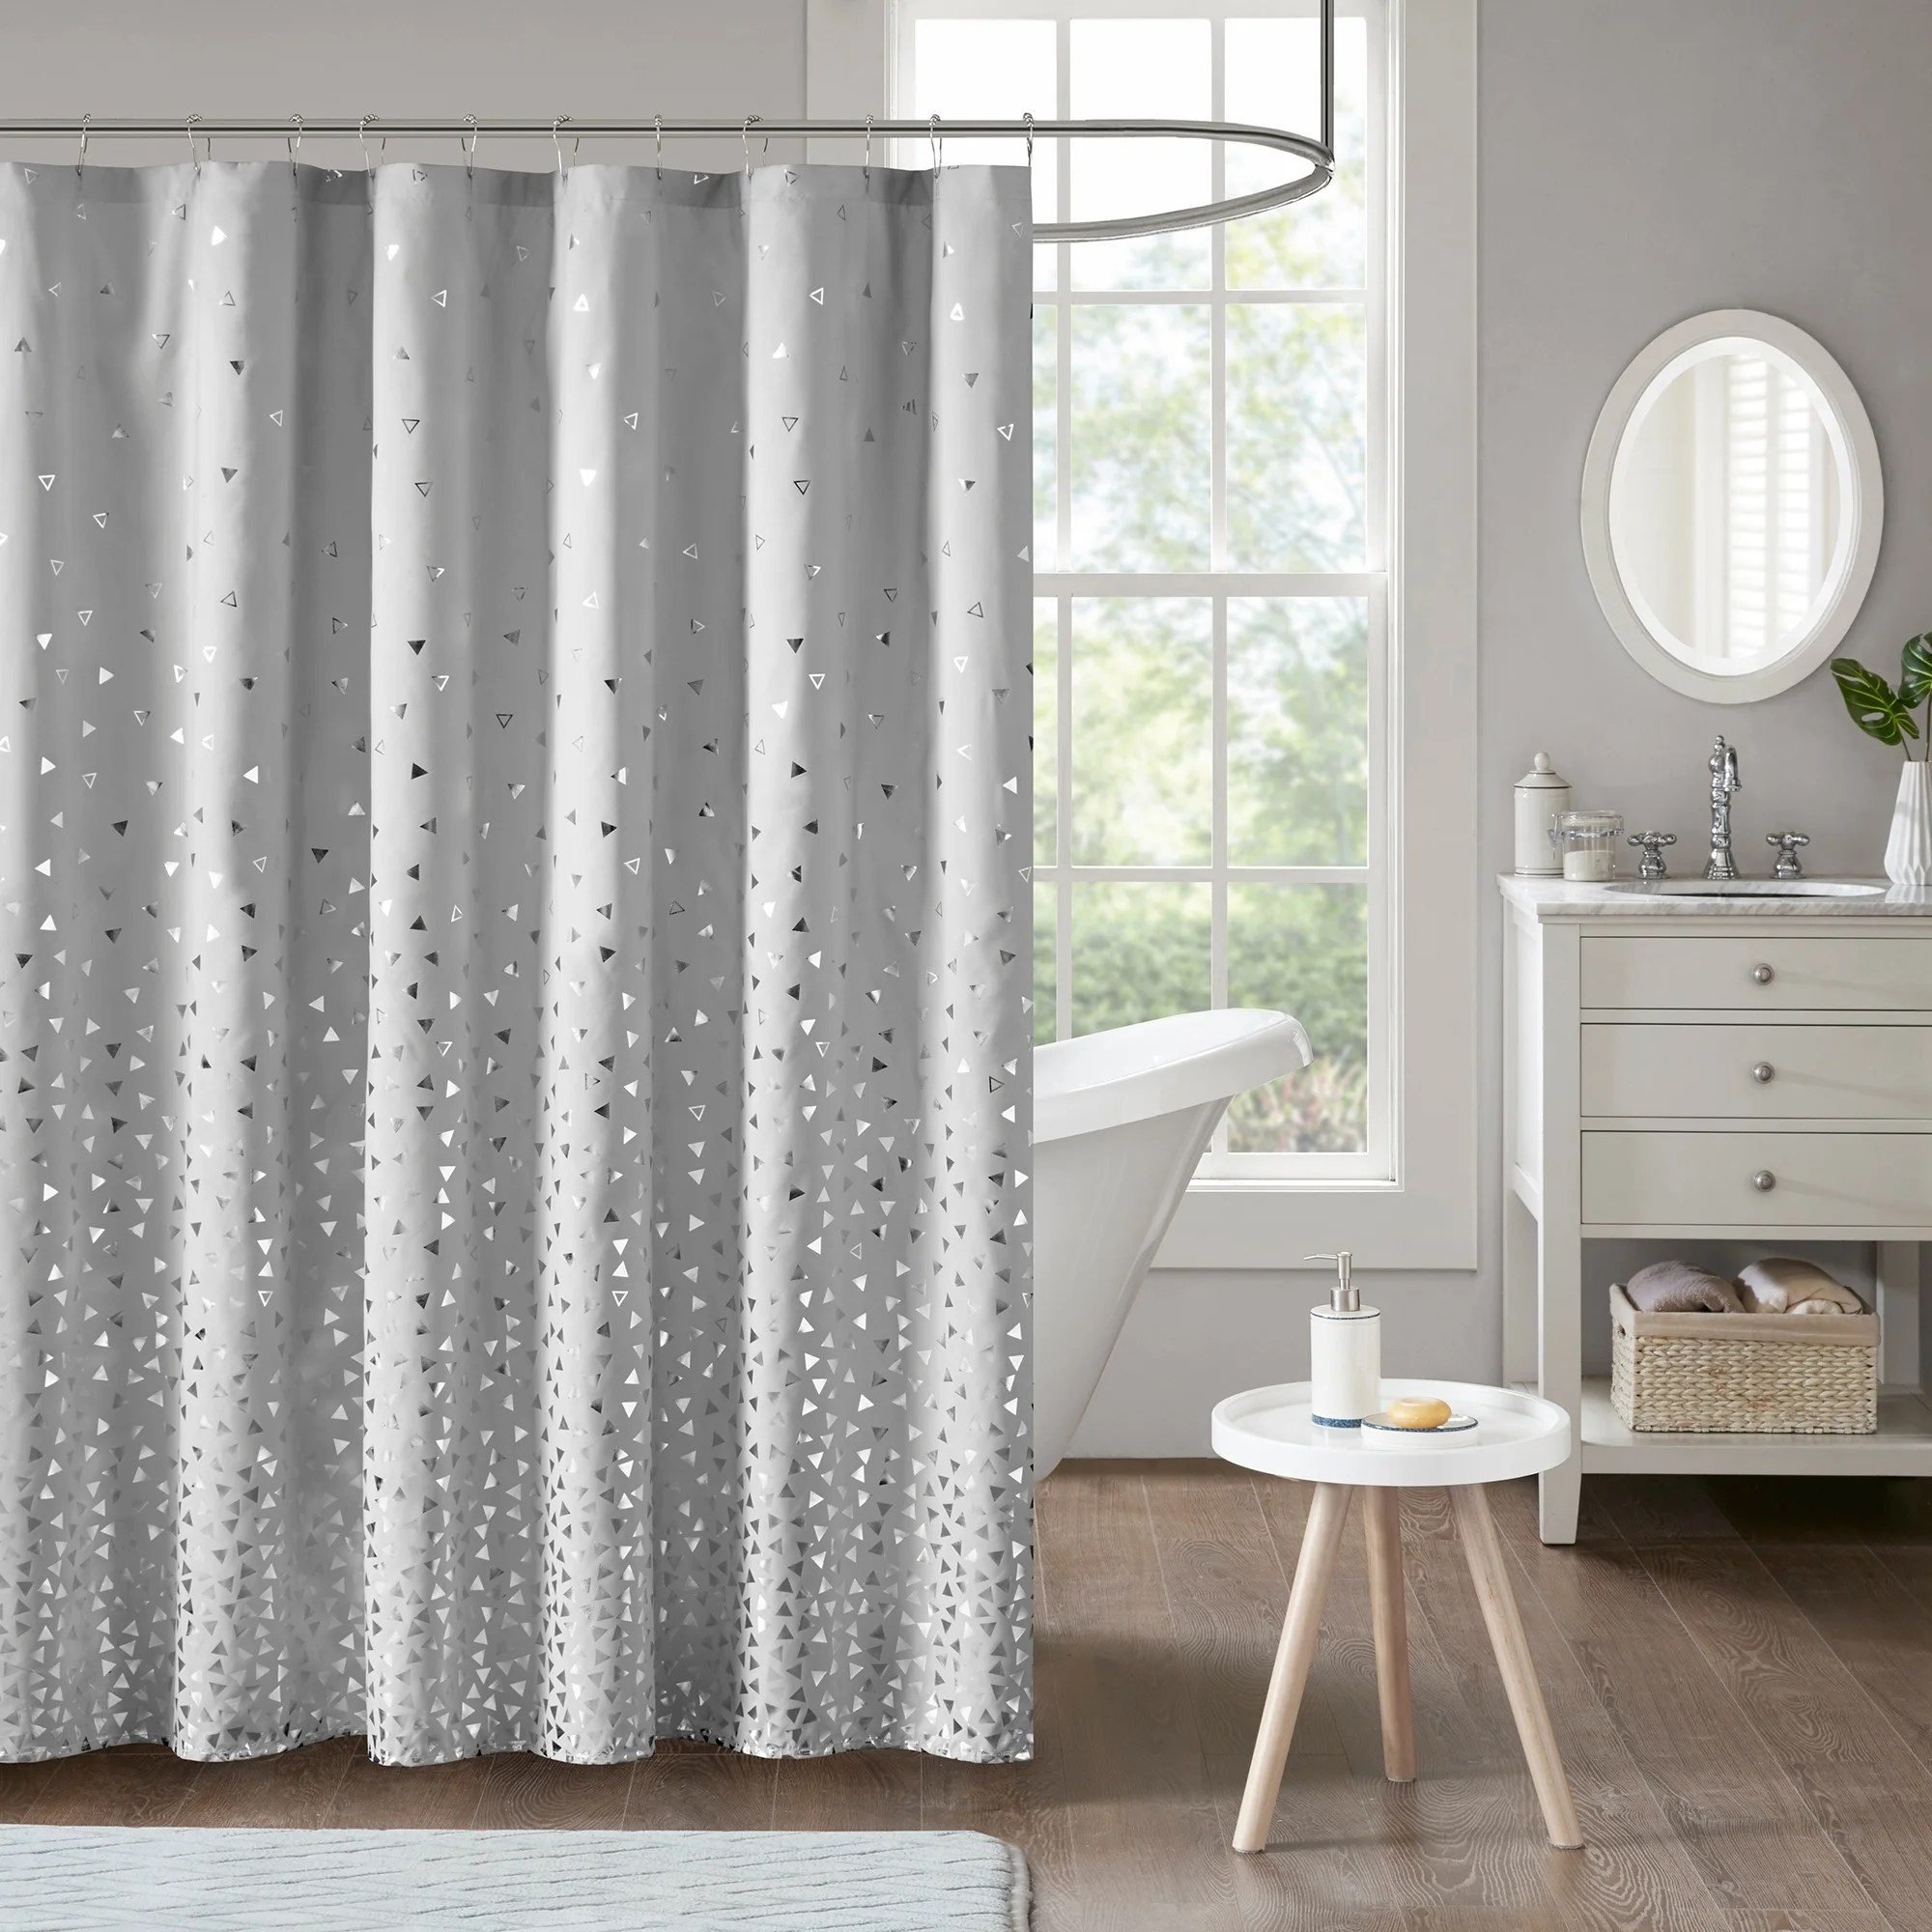 Black Queen Shower Curtain Silver Shower Curtains Find Great Shower Curtains Accessories